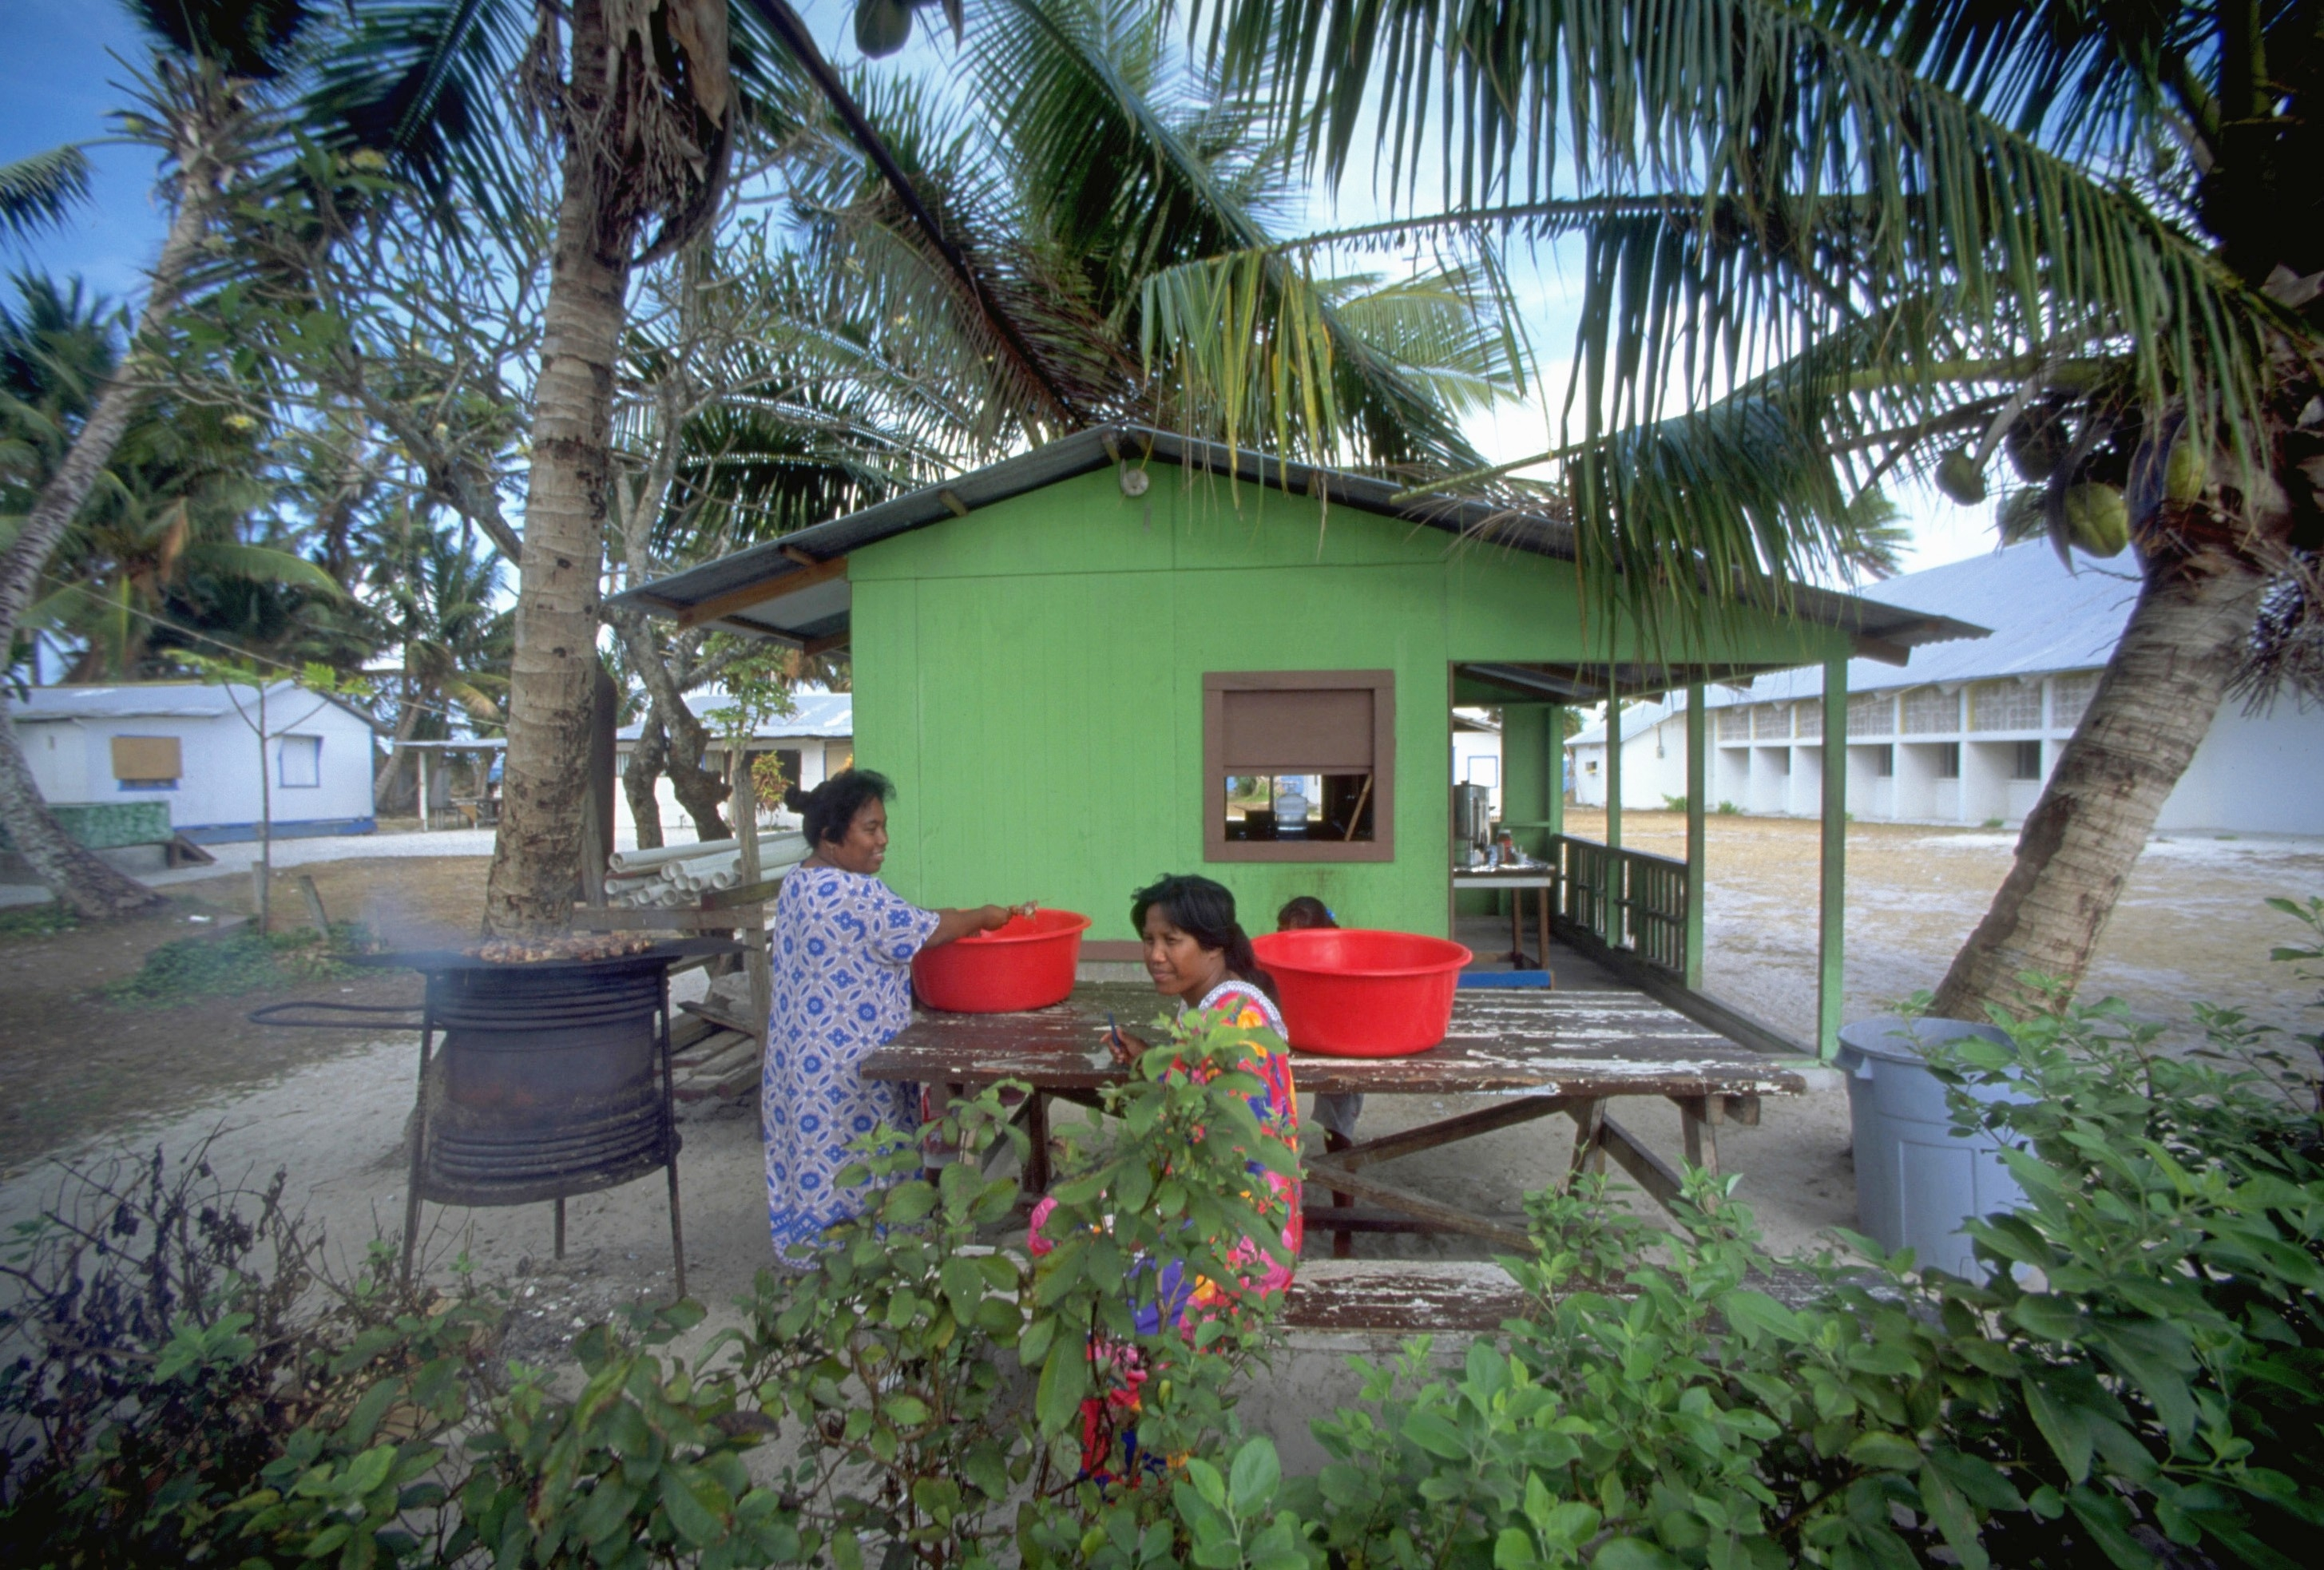 Cooking and eating outdoors at Majuro, Marshall Islands Photo © Douglas Peebles/CORBIS